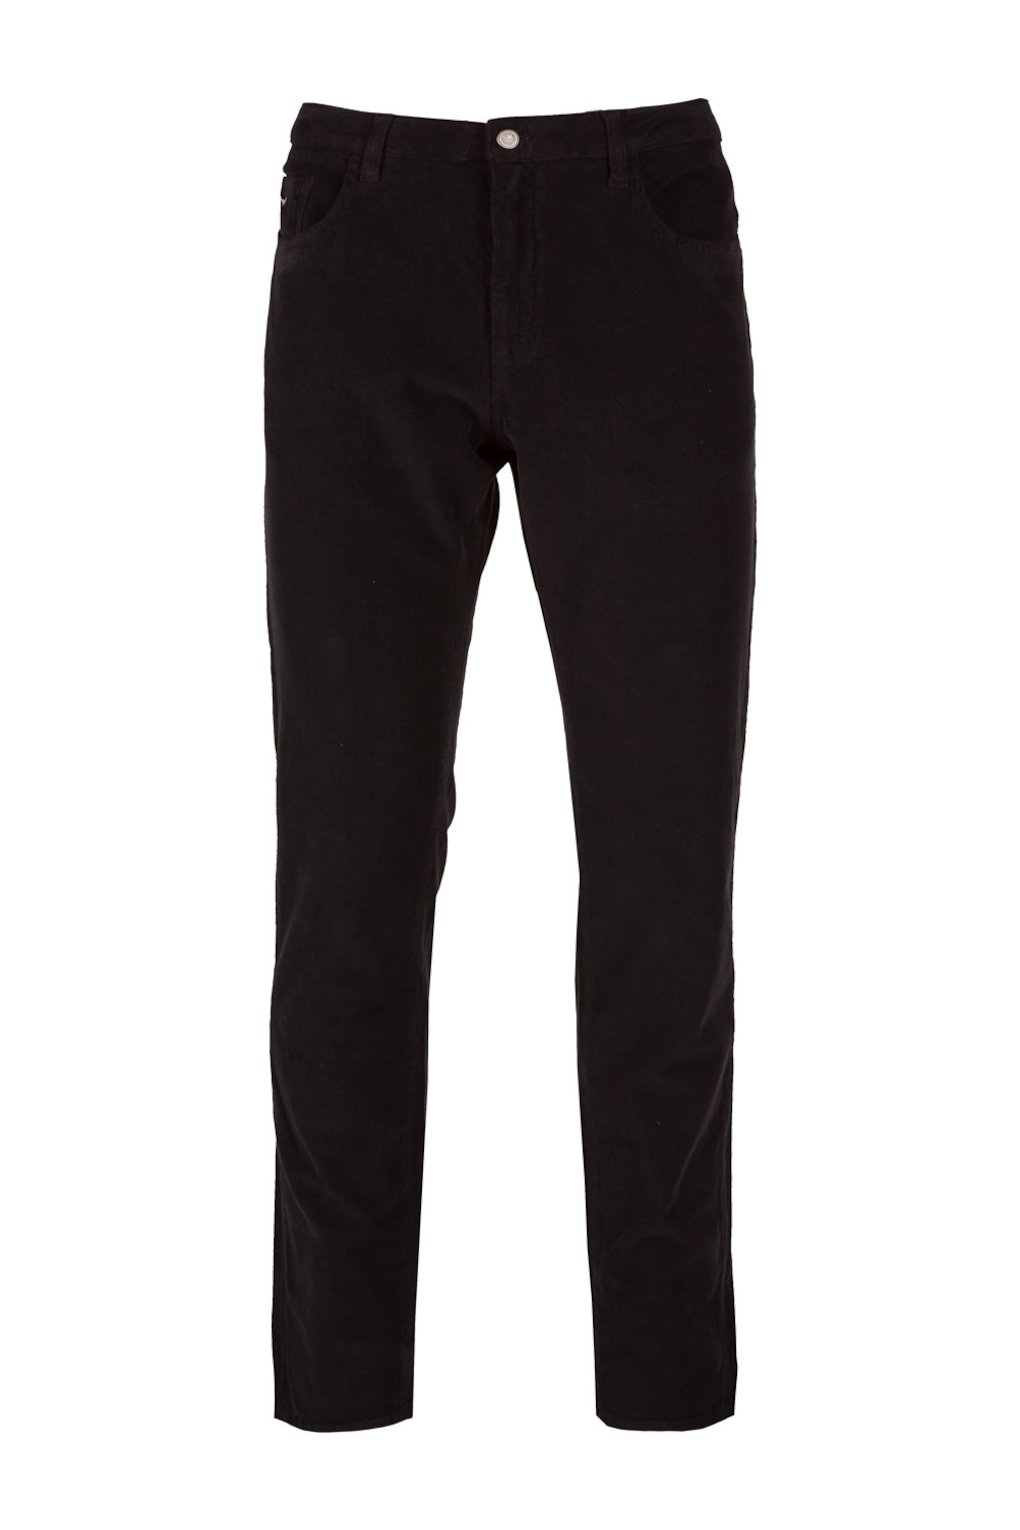 Five Pocket Velvet Trousers